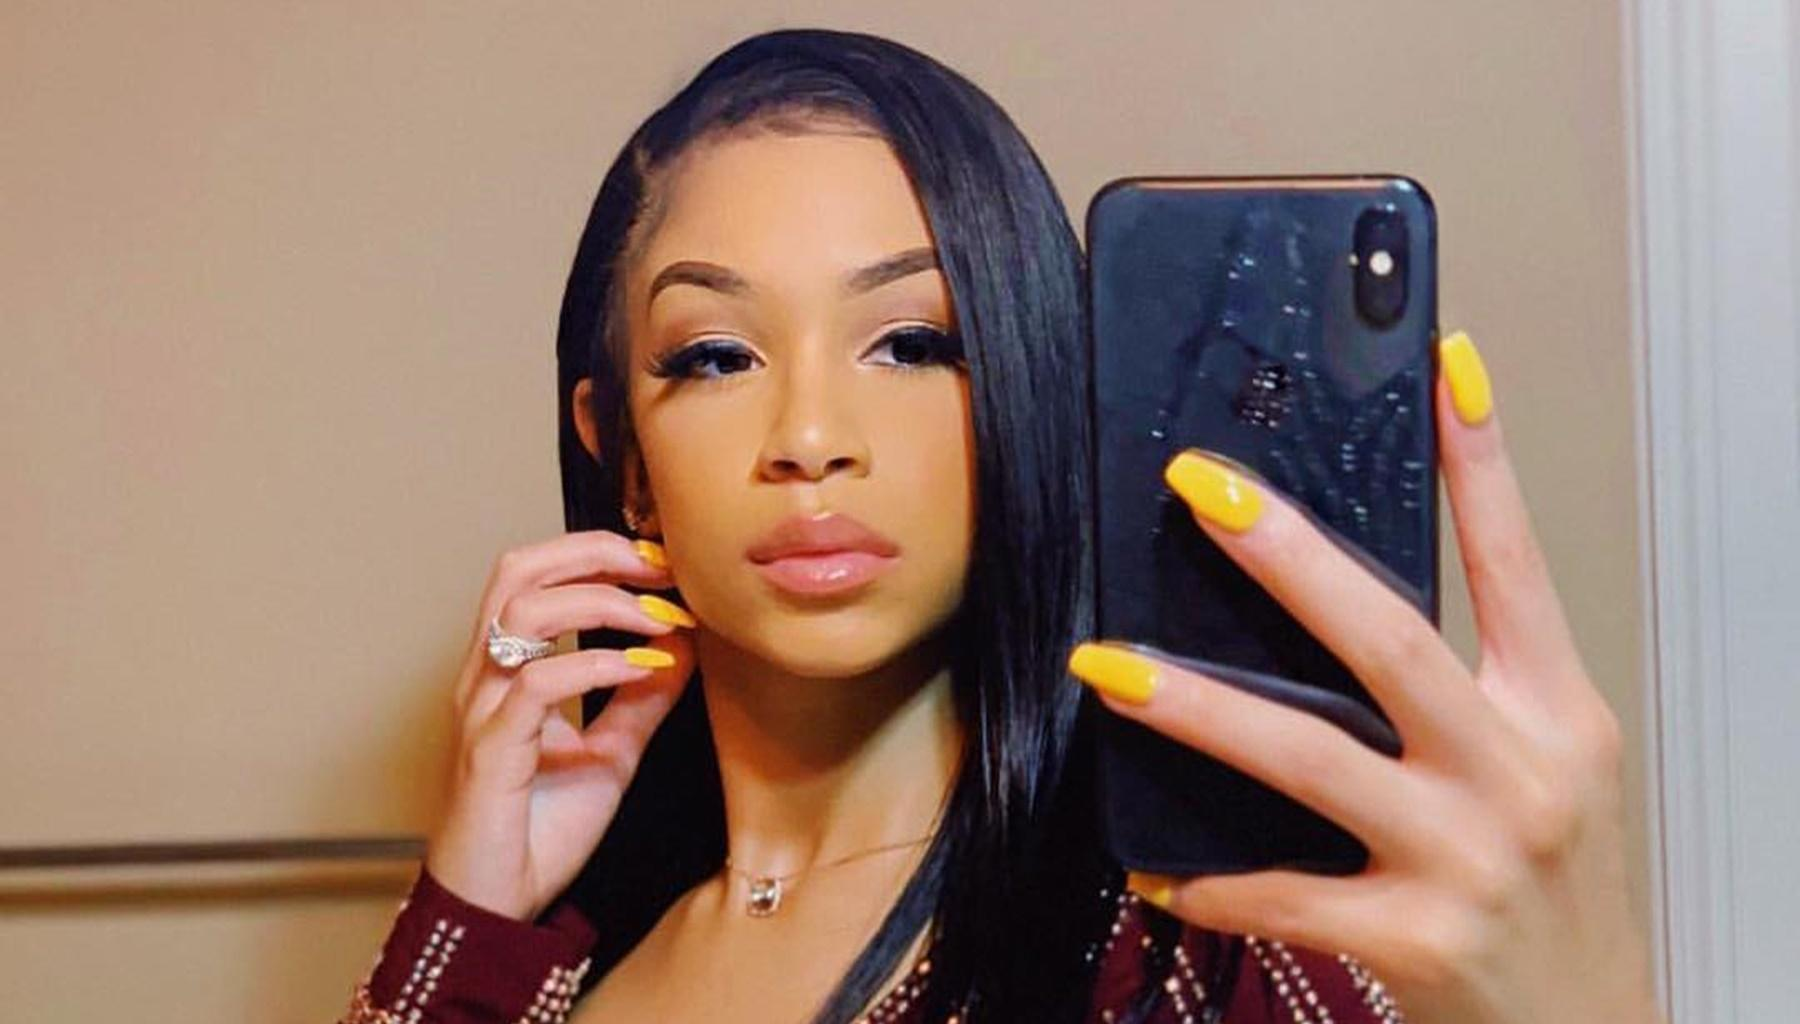 Deyjah Harris Shares Rare Photos Of T.I. And Pens Sweet Message That Leave Fans In Tears -- Tiny's Bonus Daughter Is Also Celebrating Her Birthday